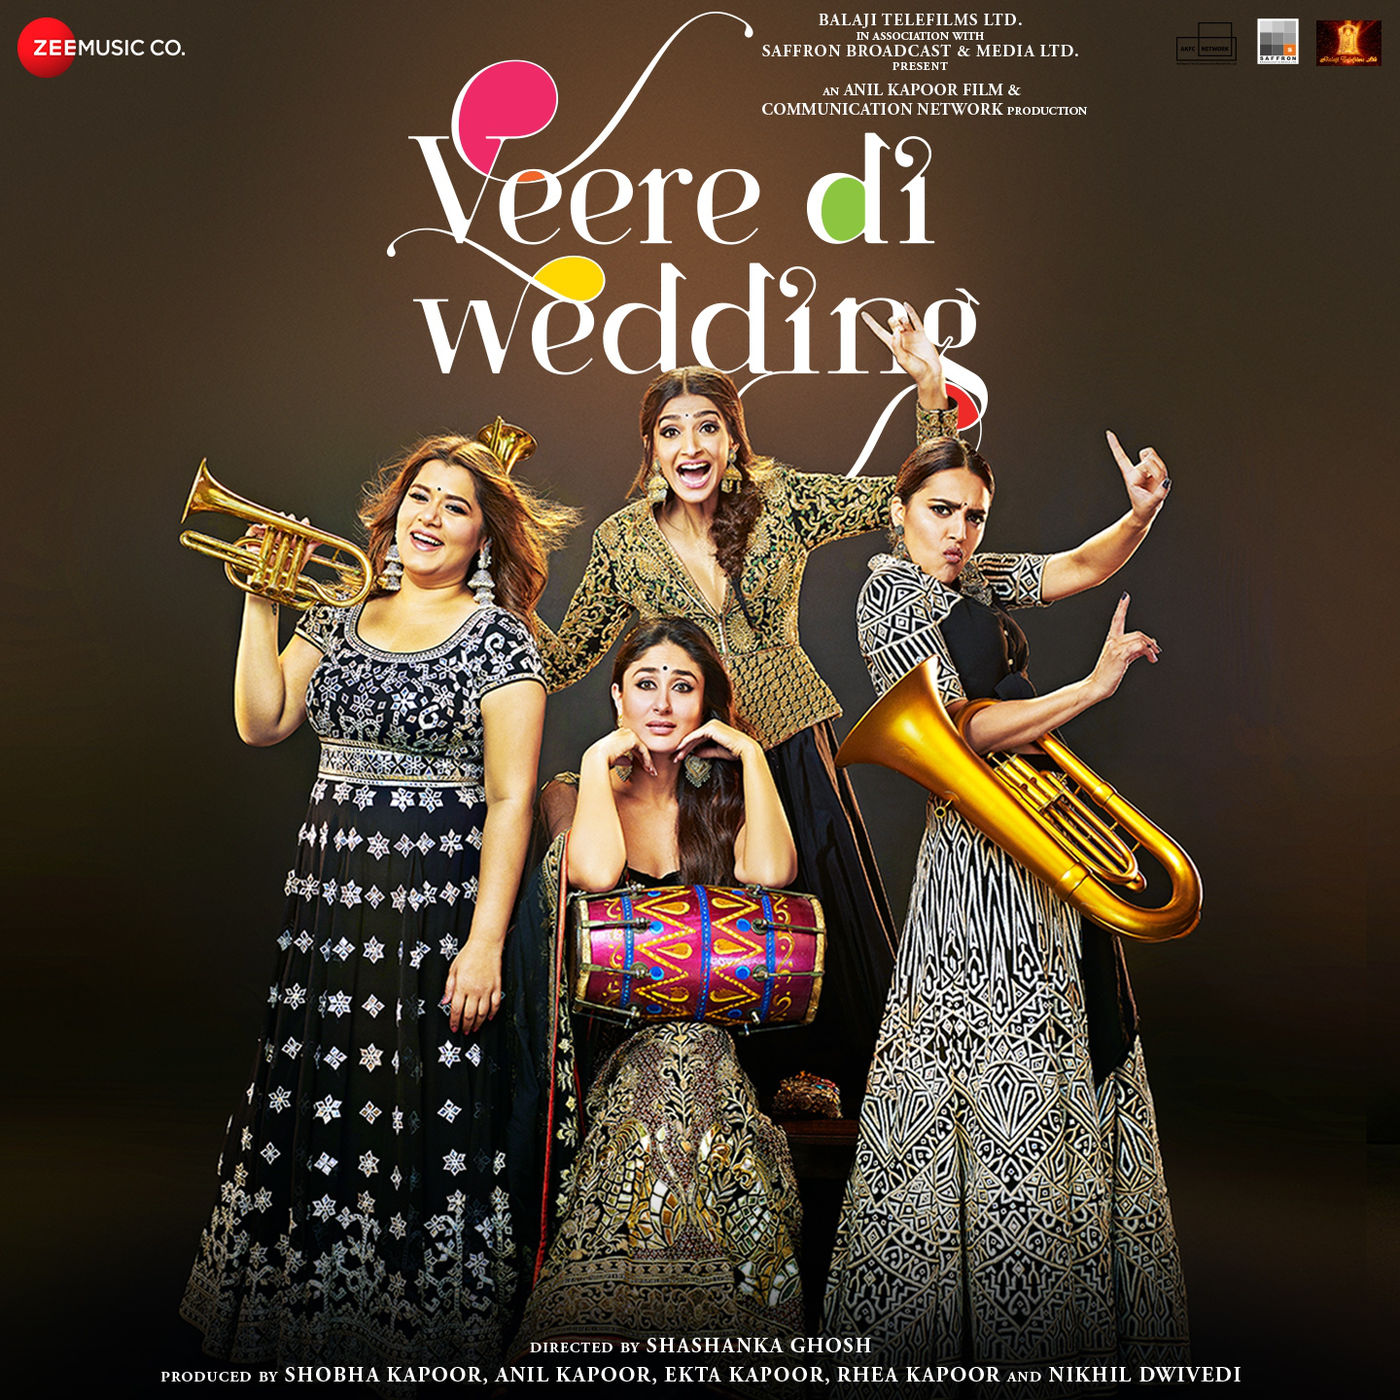 Shashwat Sachdev, White Noise, Vishal Mishra & Qaran – Veere Di Wedding (Original Motion Picture Soundtrack) [iTunes Match M4A] | iplusall.4fullz.com